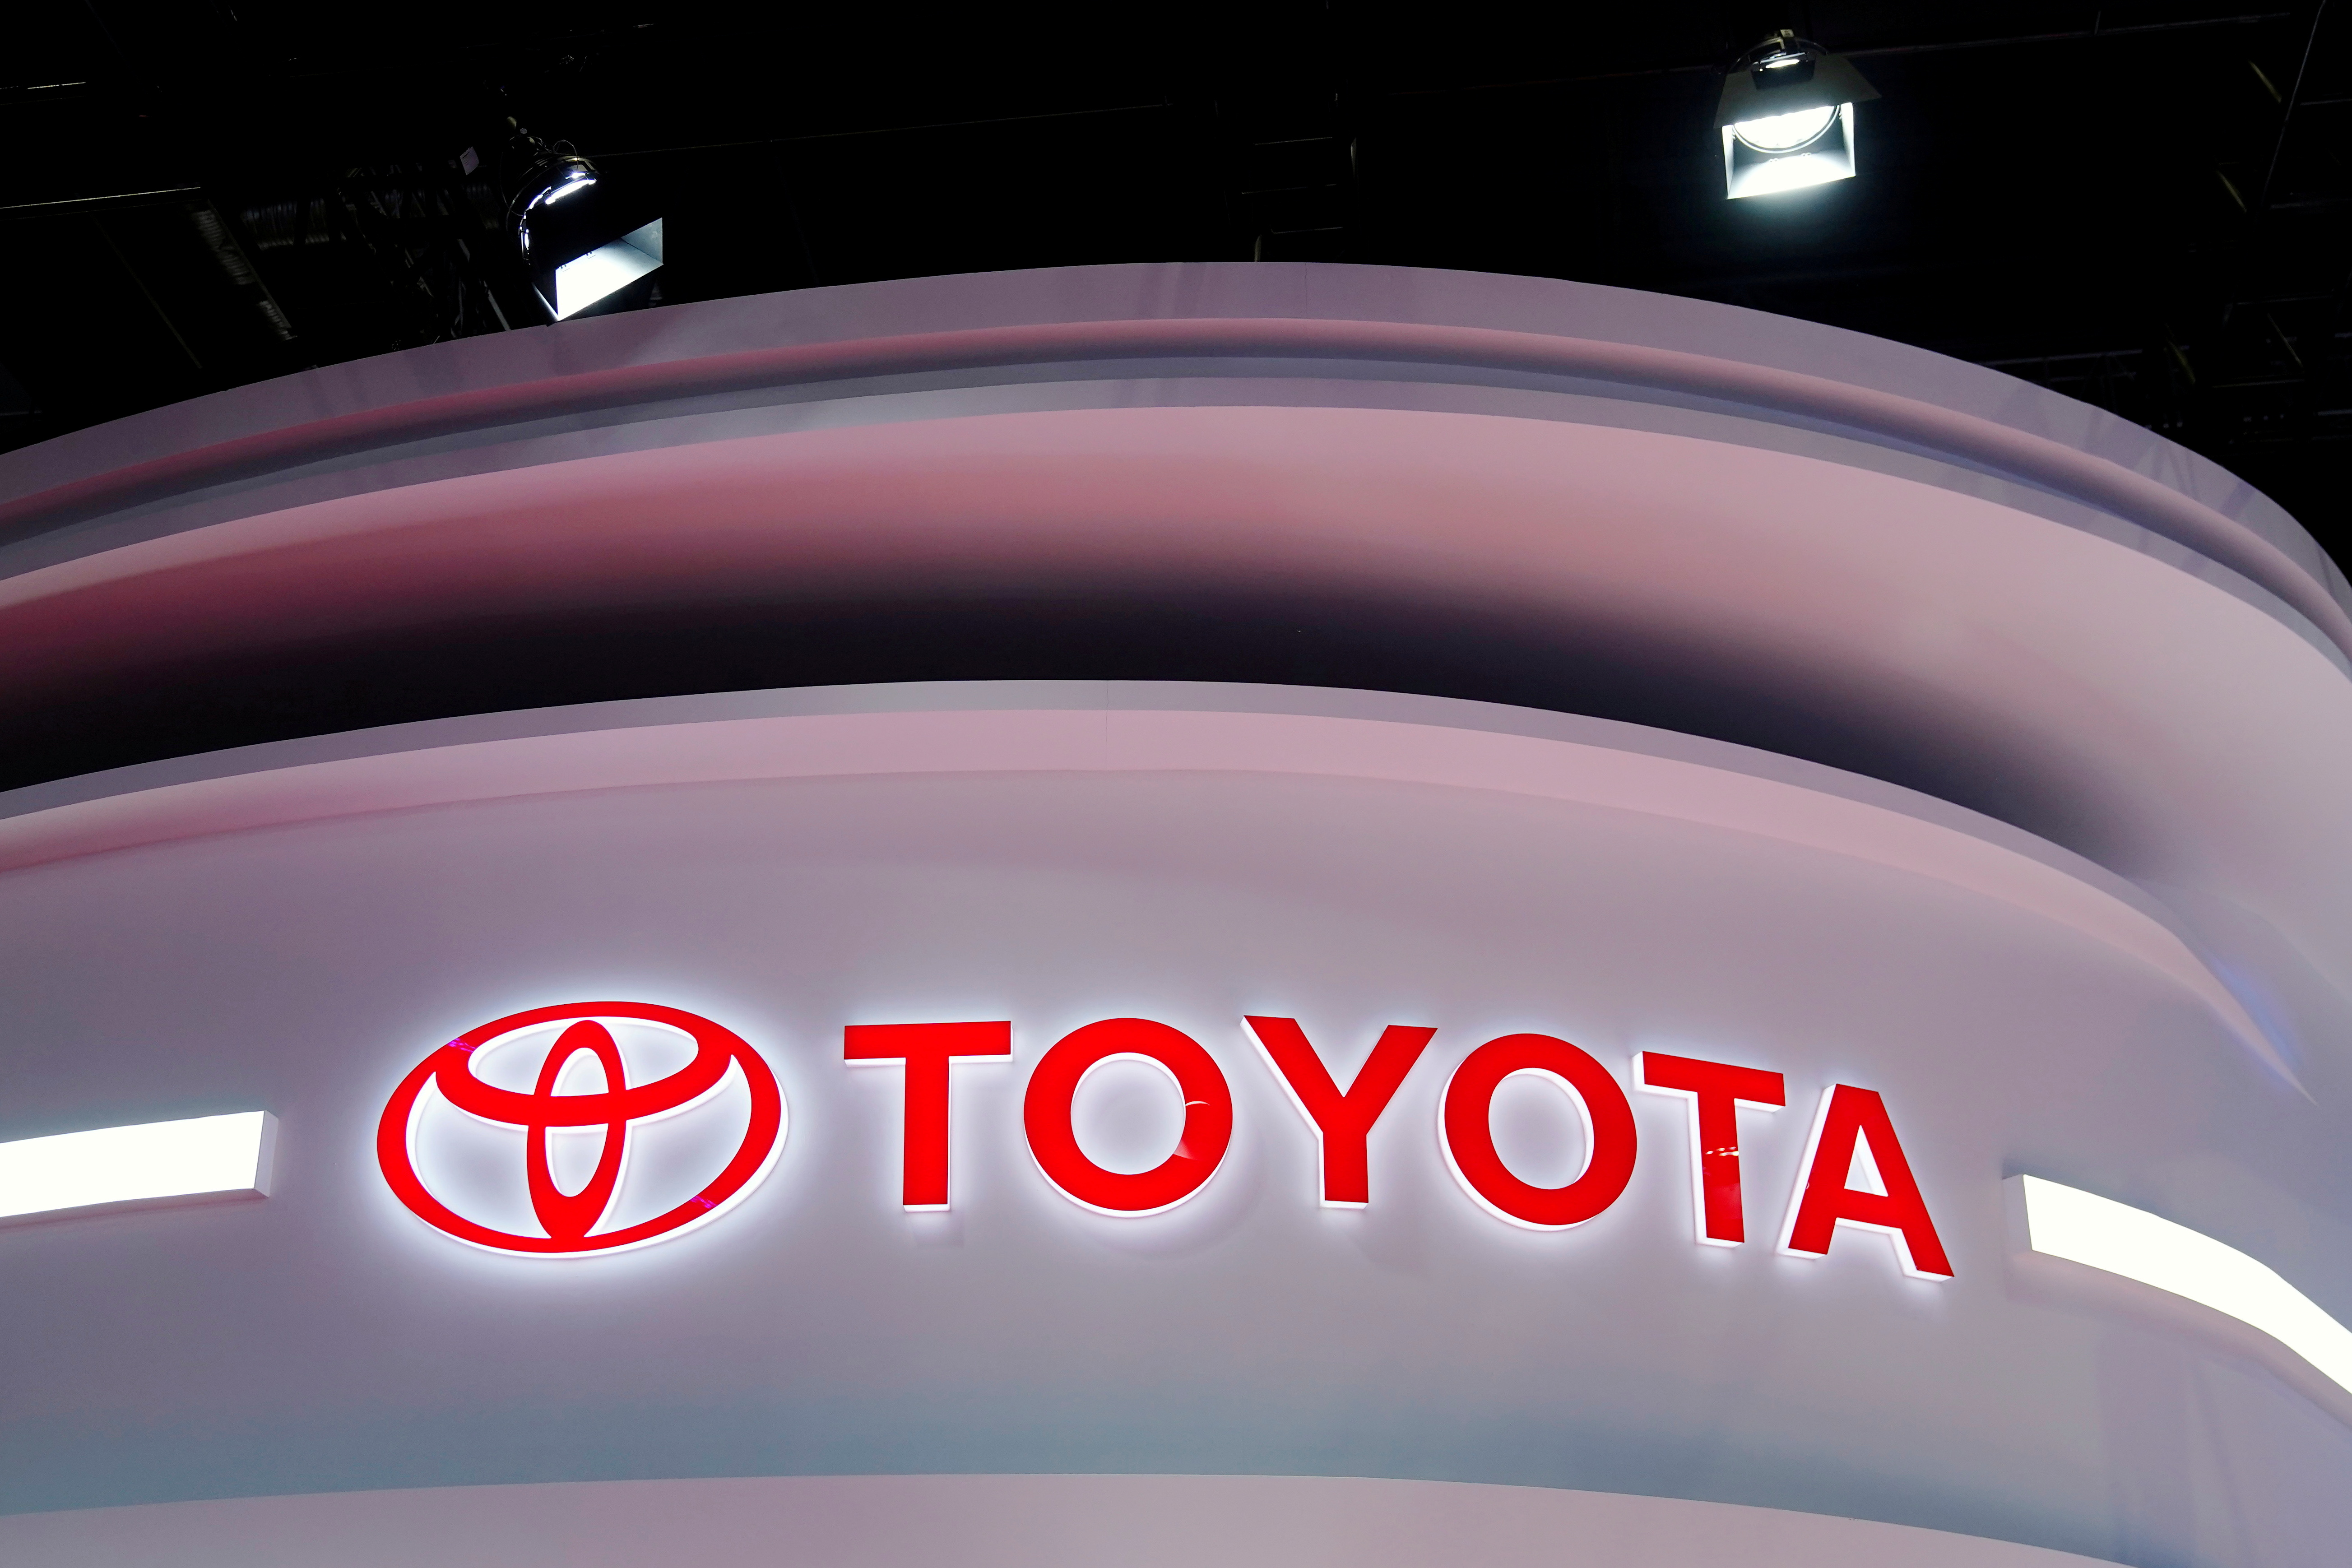 The Toyota logo is seen at its booth during a media day for the Auto Shanghai show in Shanghai, China, April 19, 2021. REUTERS/Aly Song